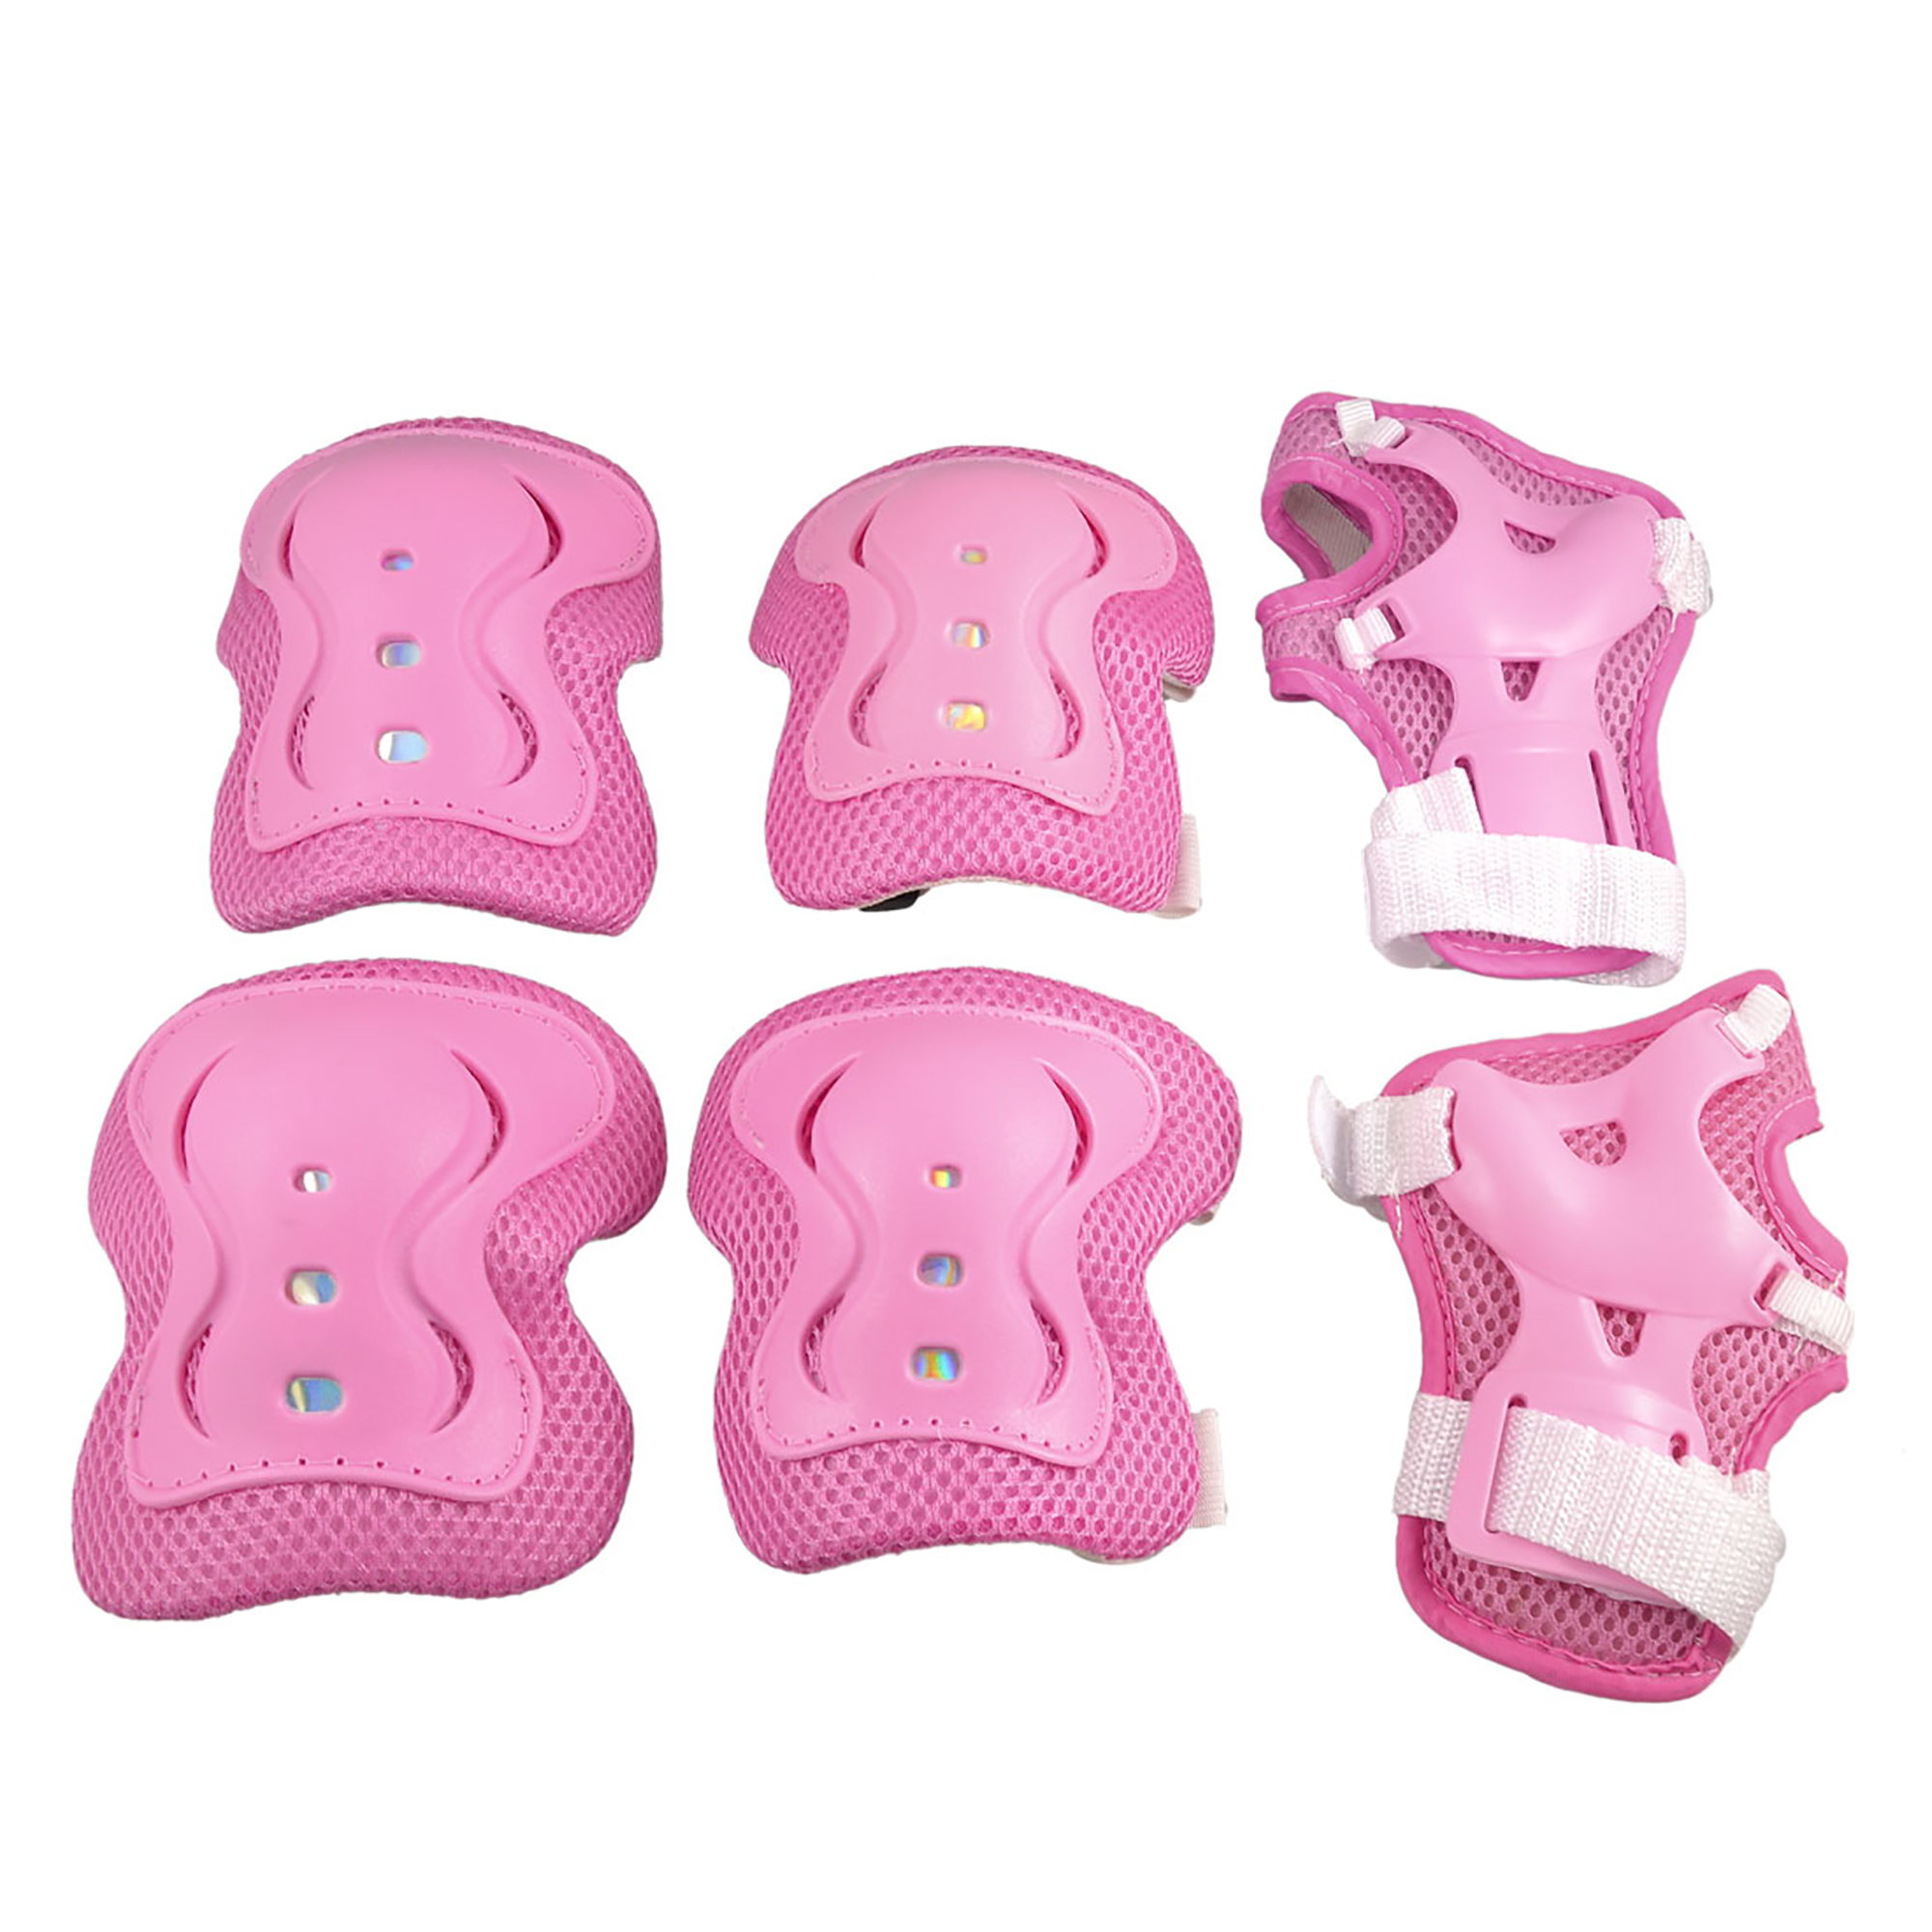 Cycling Roller Skating Plastic Wrist Elbow Knee Protective Pads Support Brace Pink White 6 in 1 Set